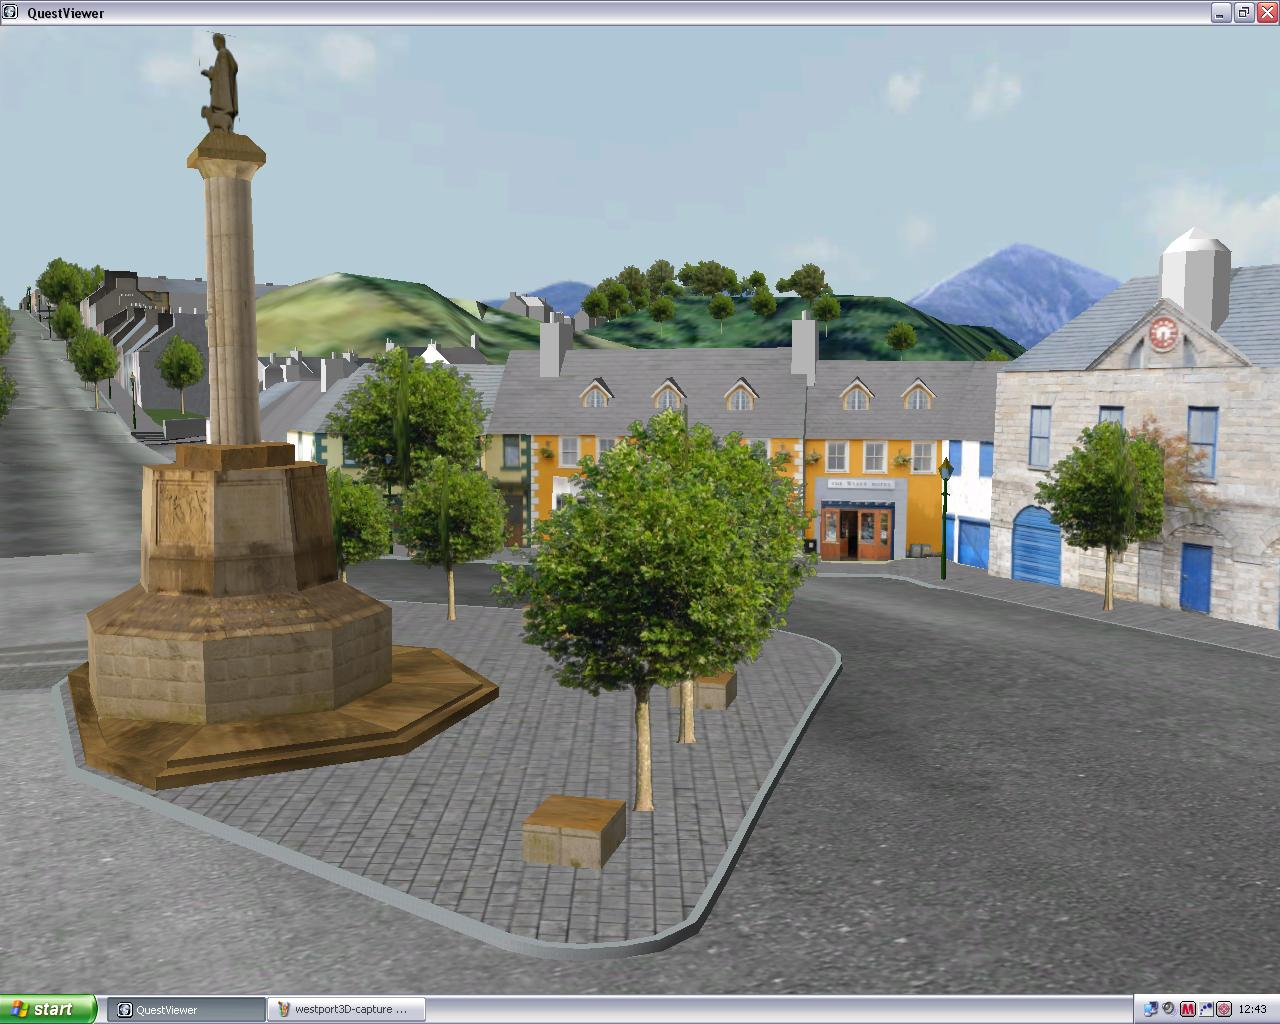 westport3d-capture-3.jpg